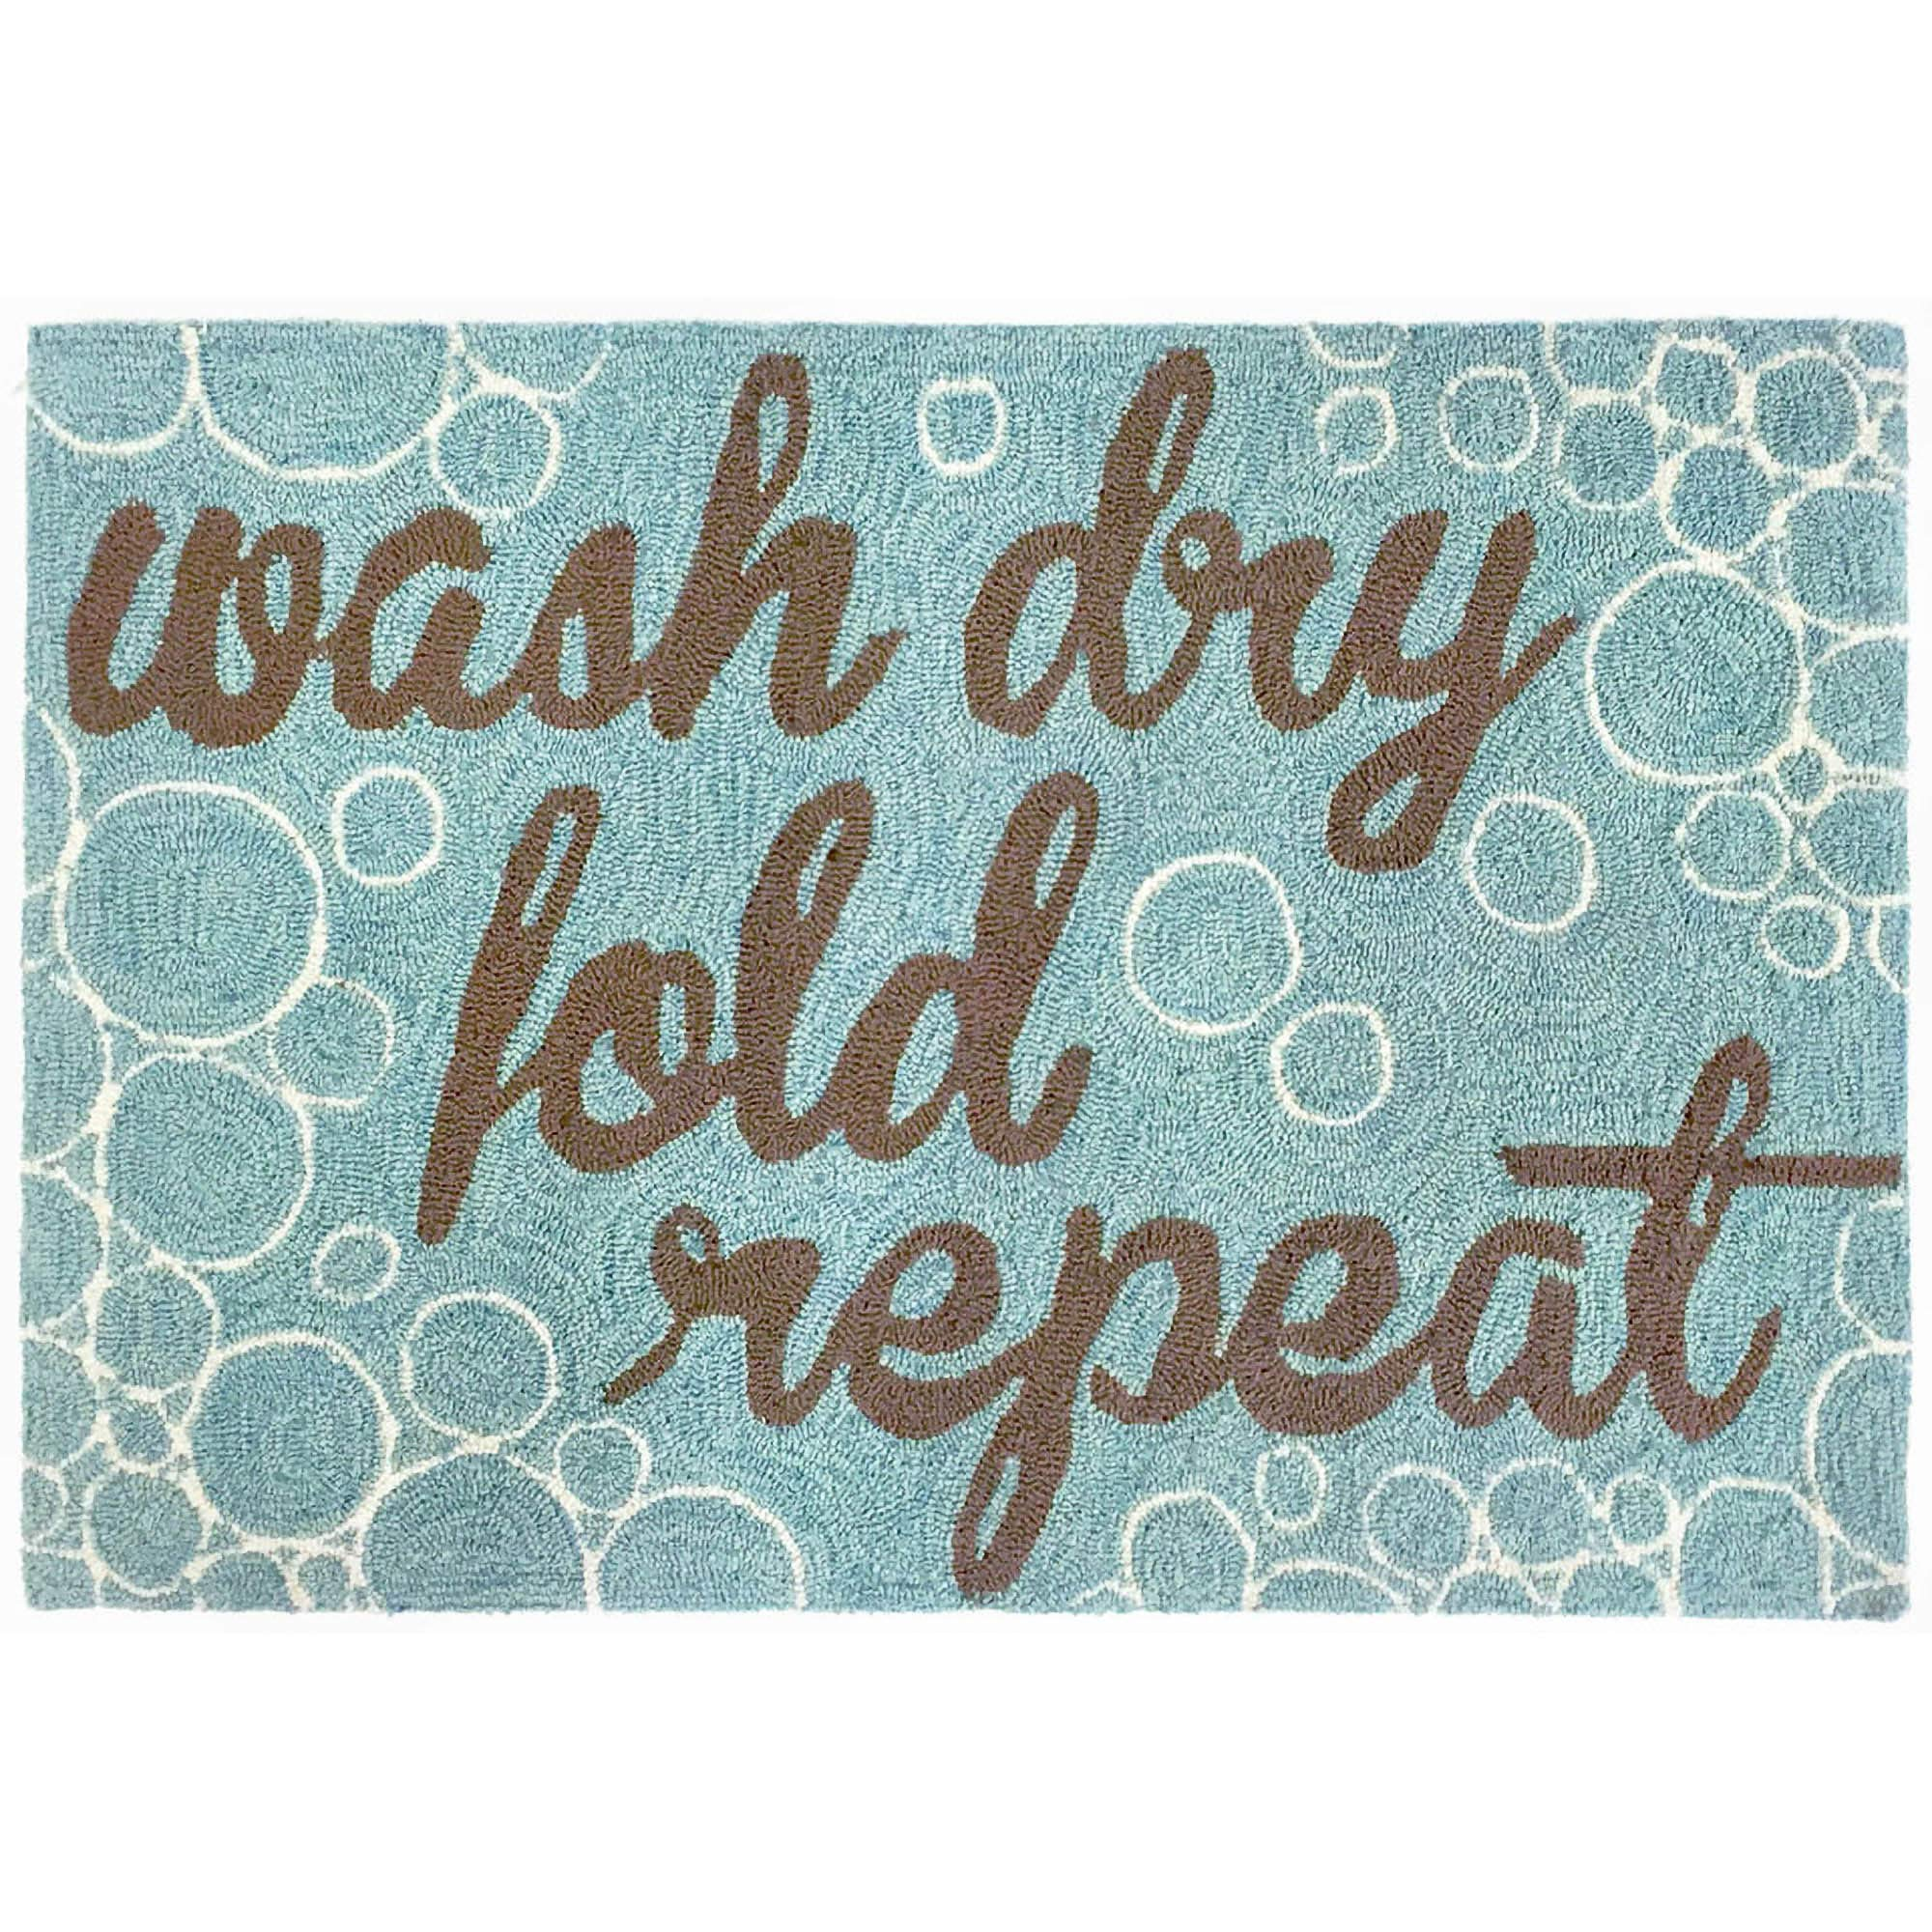 Liora Manne FTP12154904 Frontporch Front Porch Laundry Wash.and Repeat Aqua Indoor/Outdoor Rug, 20'' X 30'', Blue and Brown